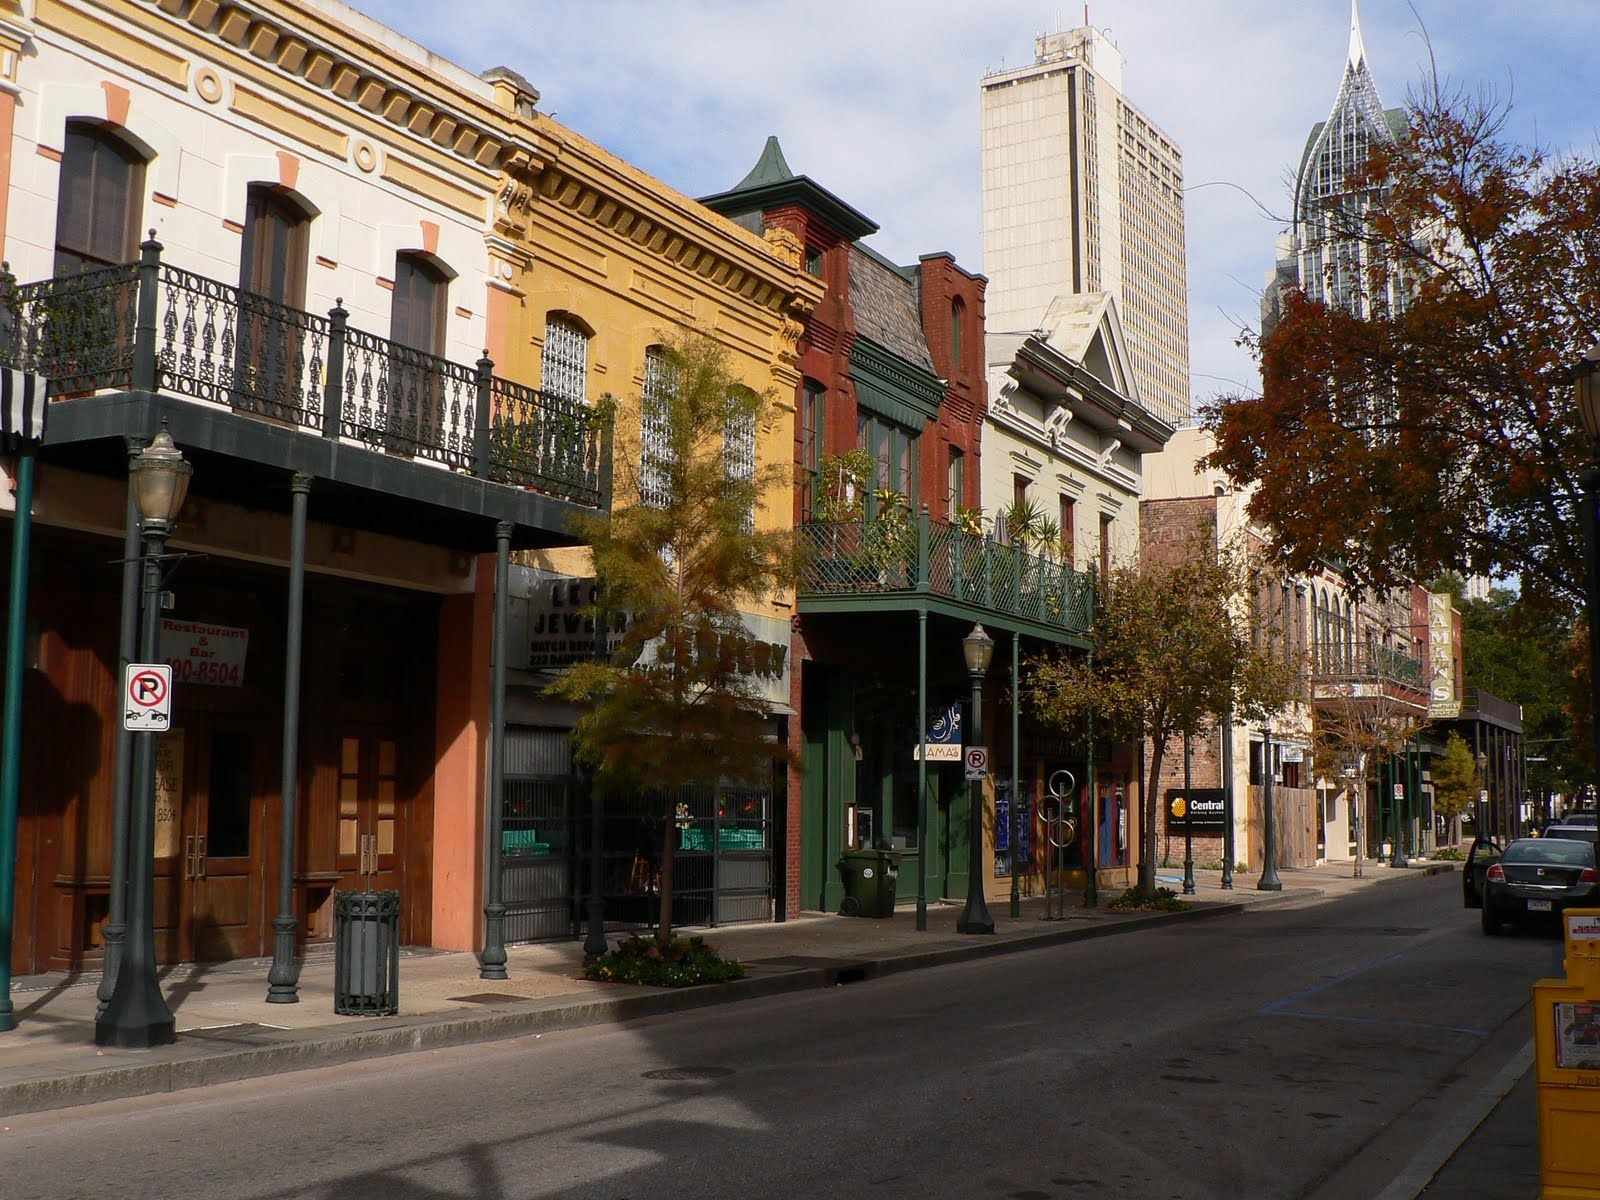 Dauphin street mobile al places ive been to pinterest dauphin street mobile al nvjuhfo Choice Image